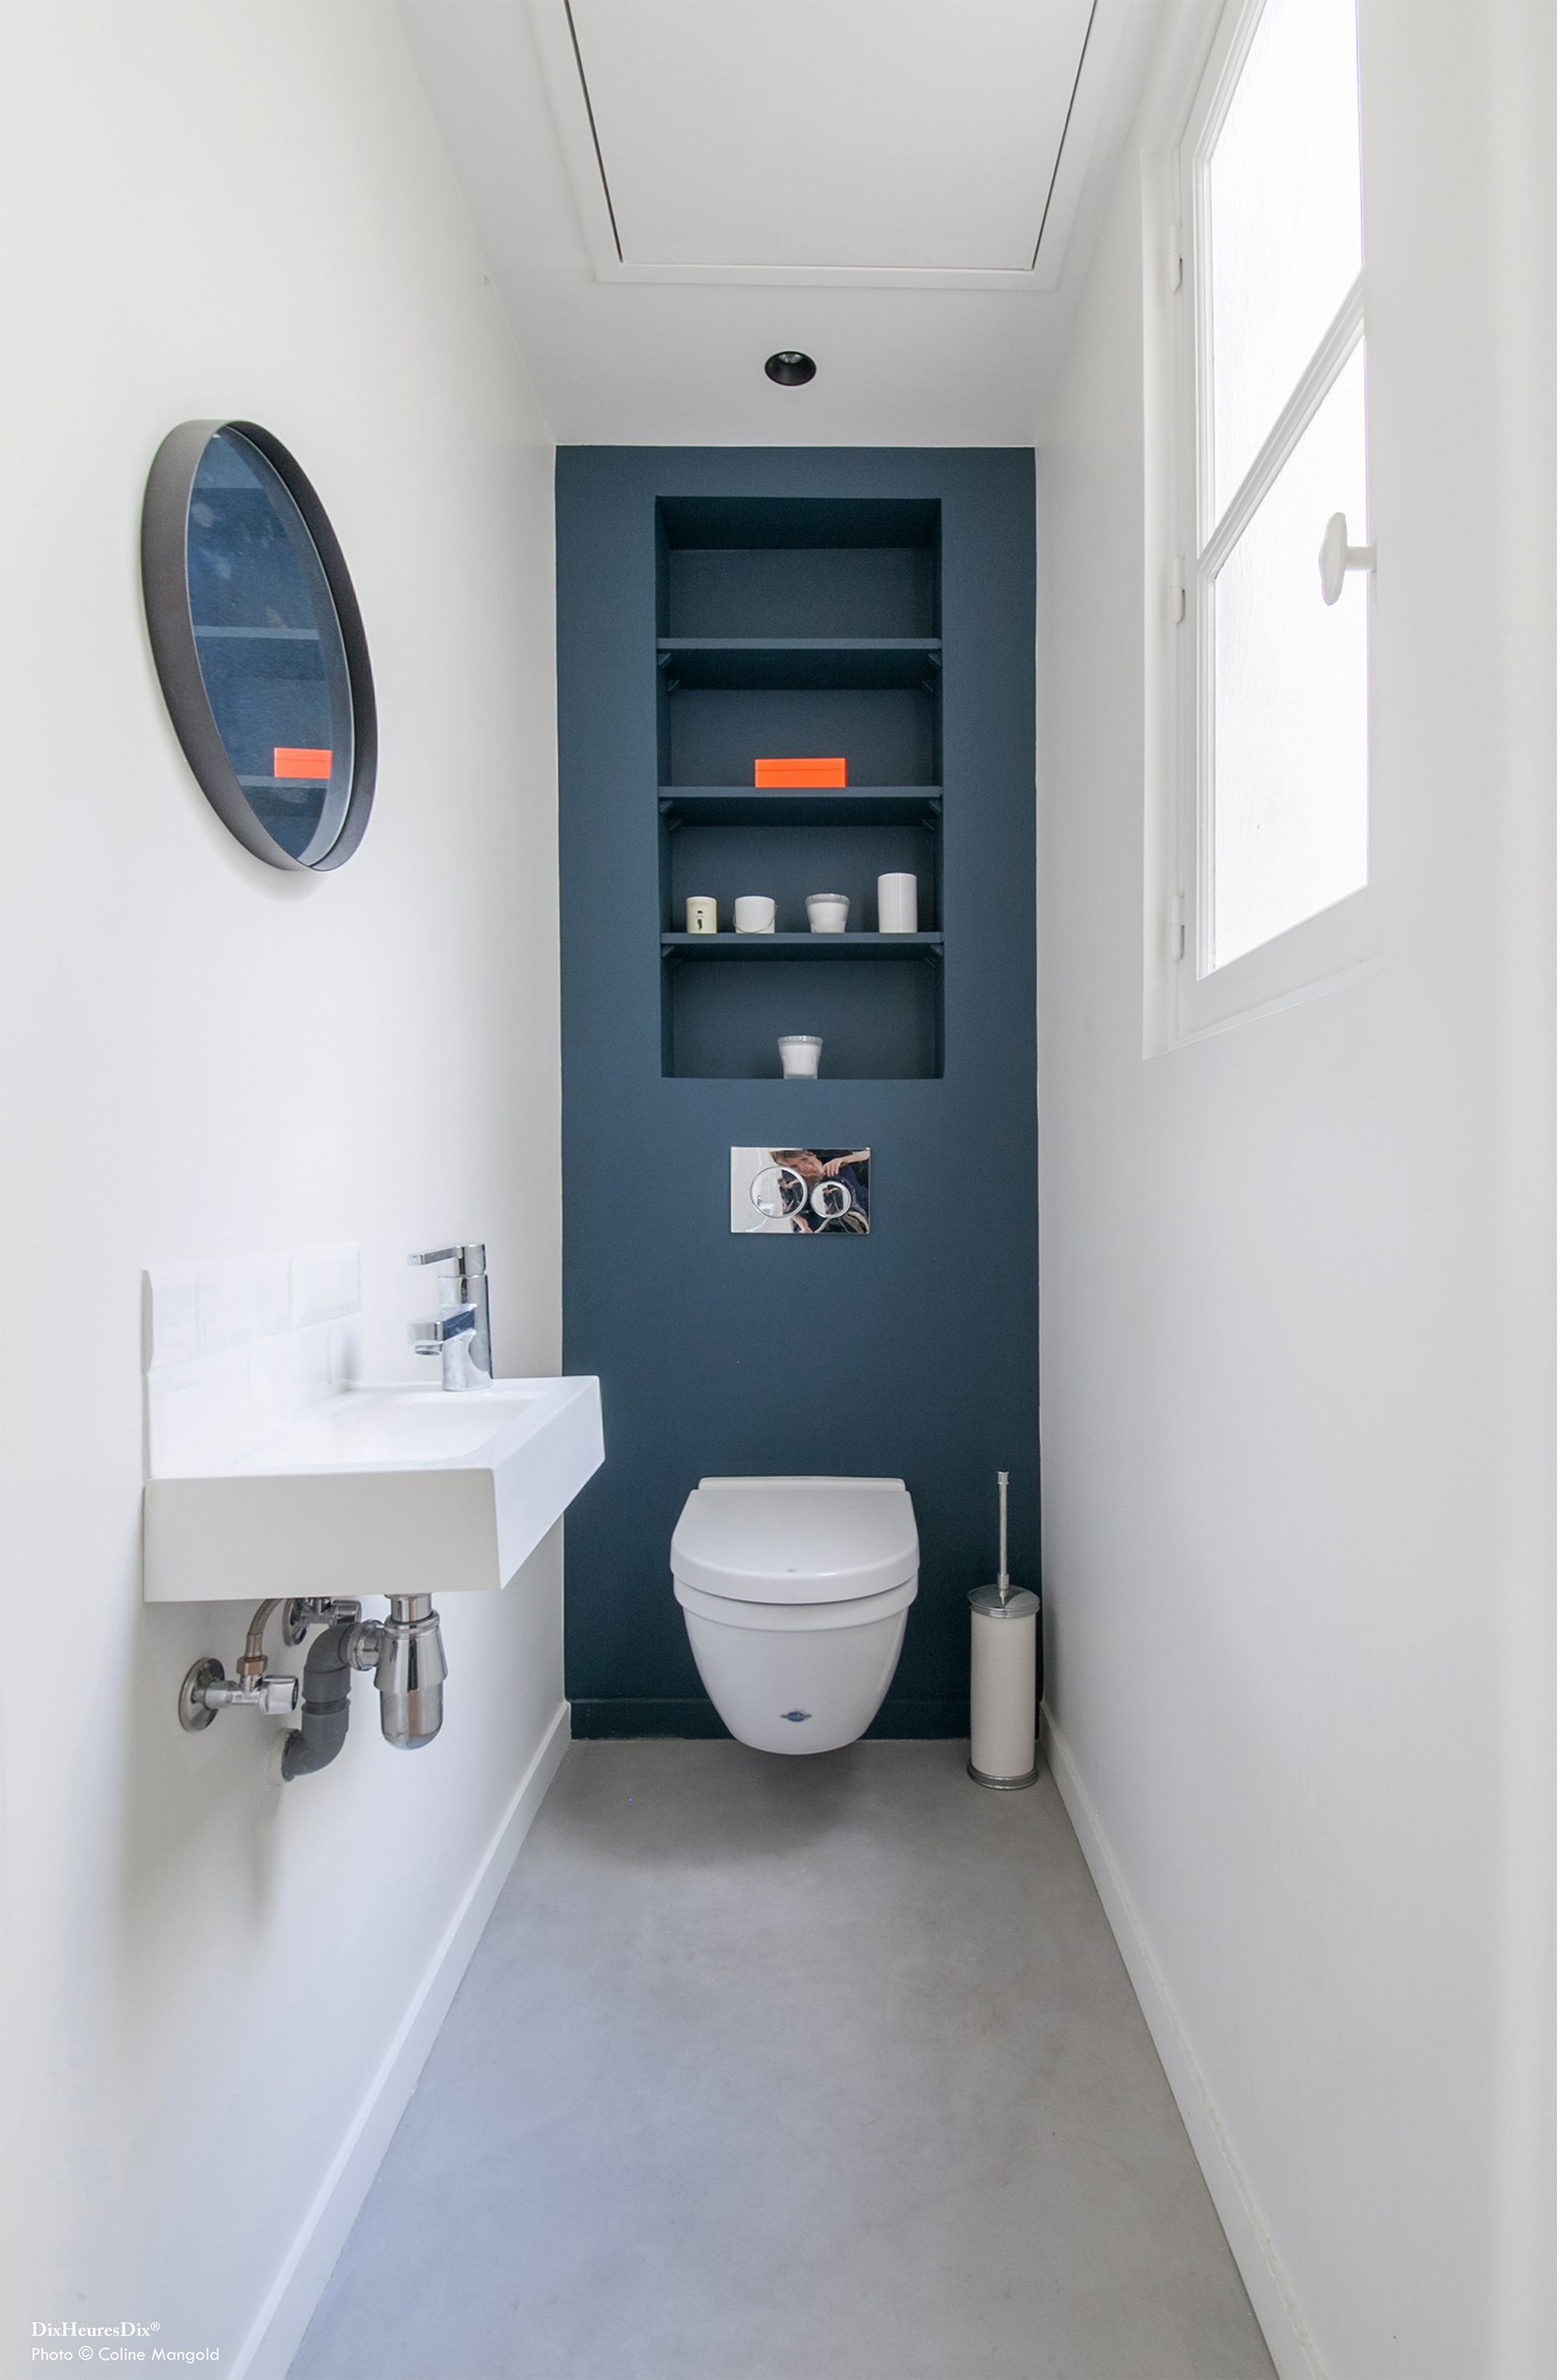 r alisation sanitaire wc bleu nuit suspendues architecture restructuration am nagement. Black Bedroom Furniture Sets. Home Design Ideas